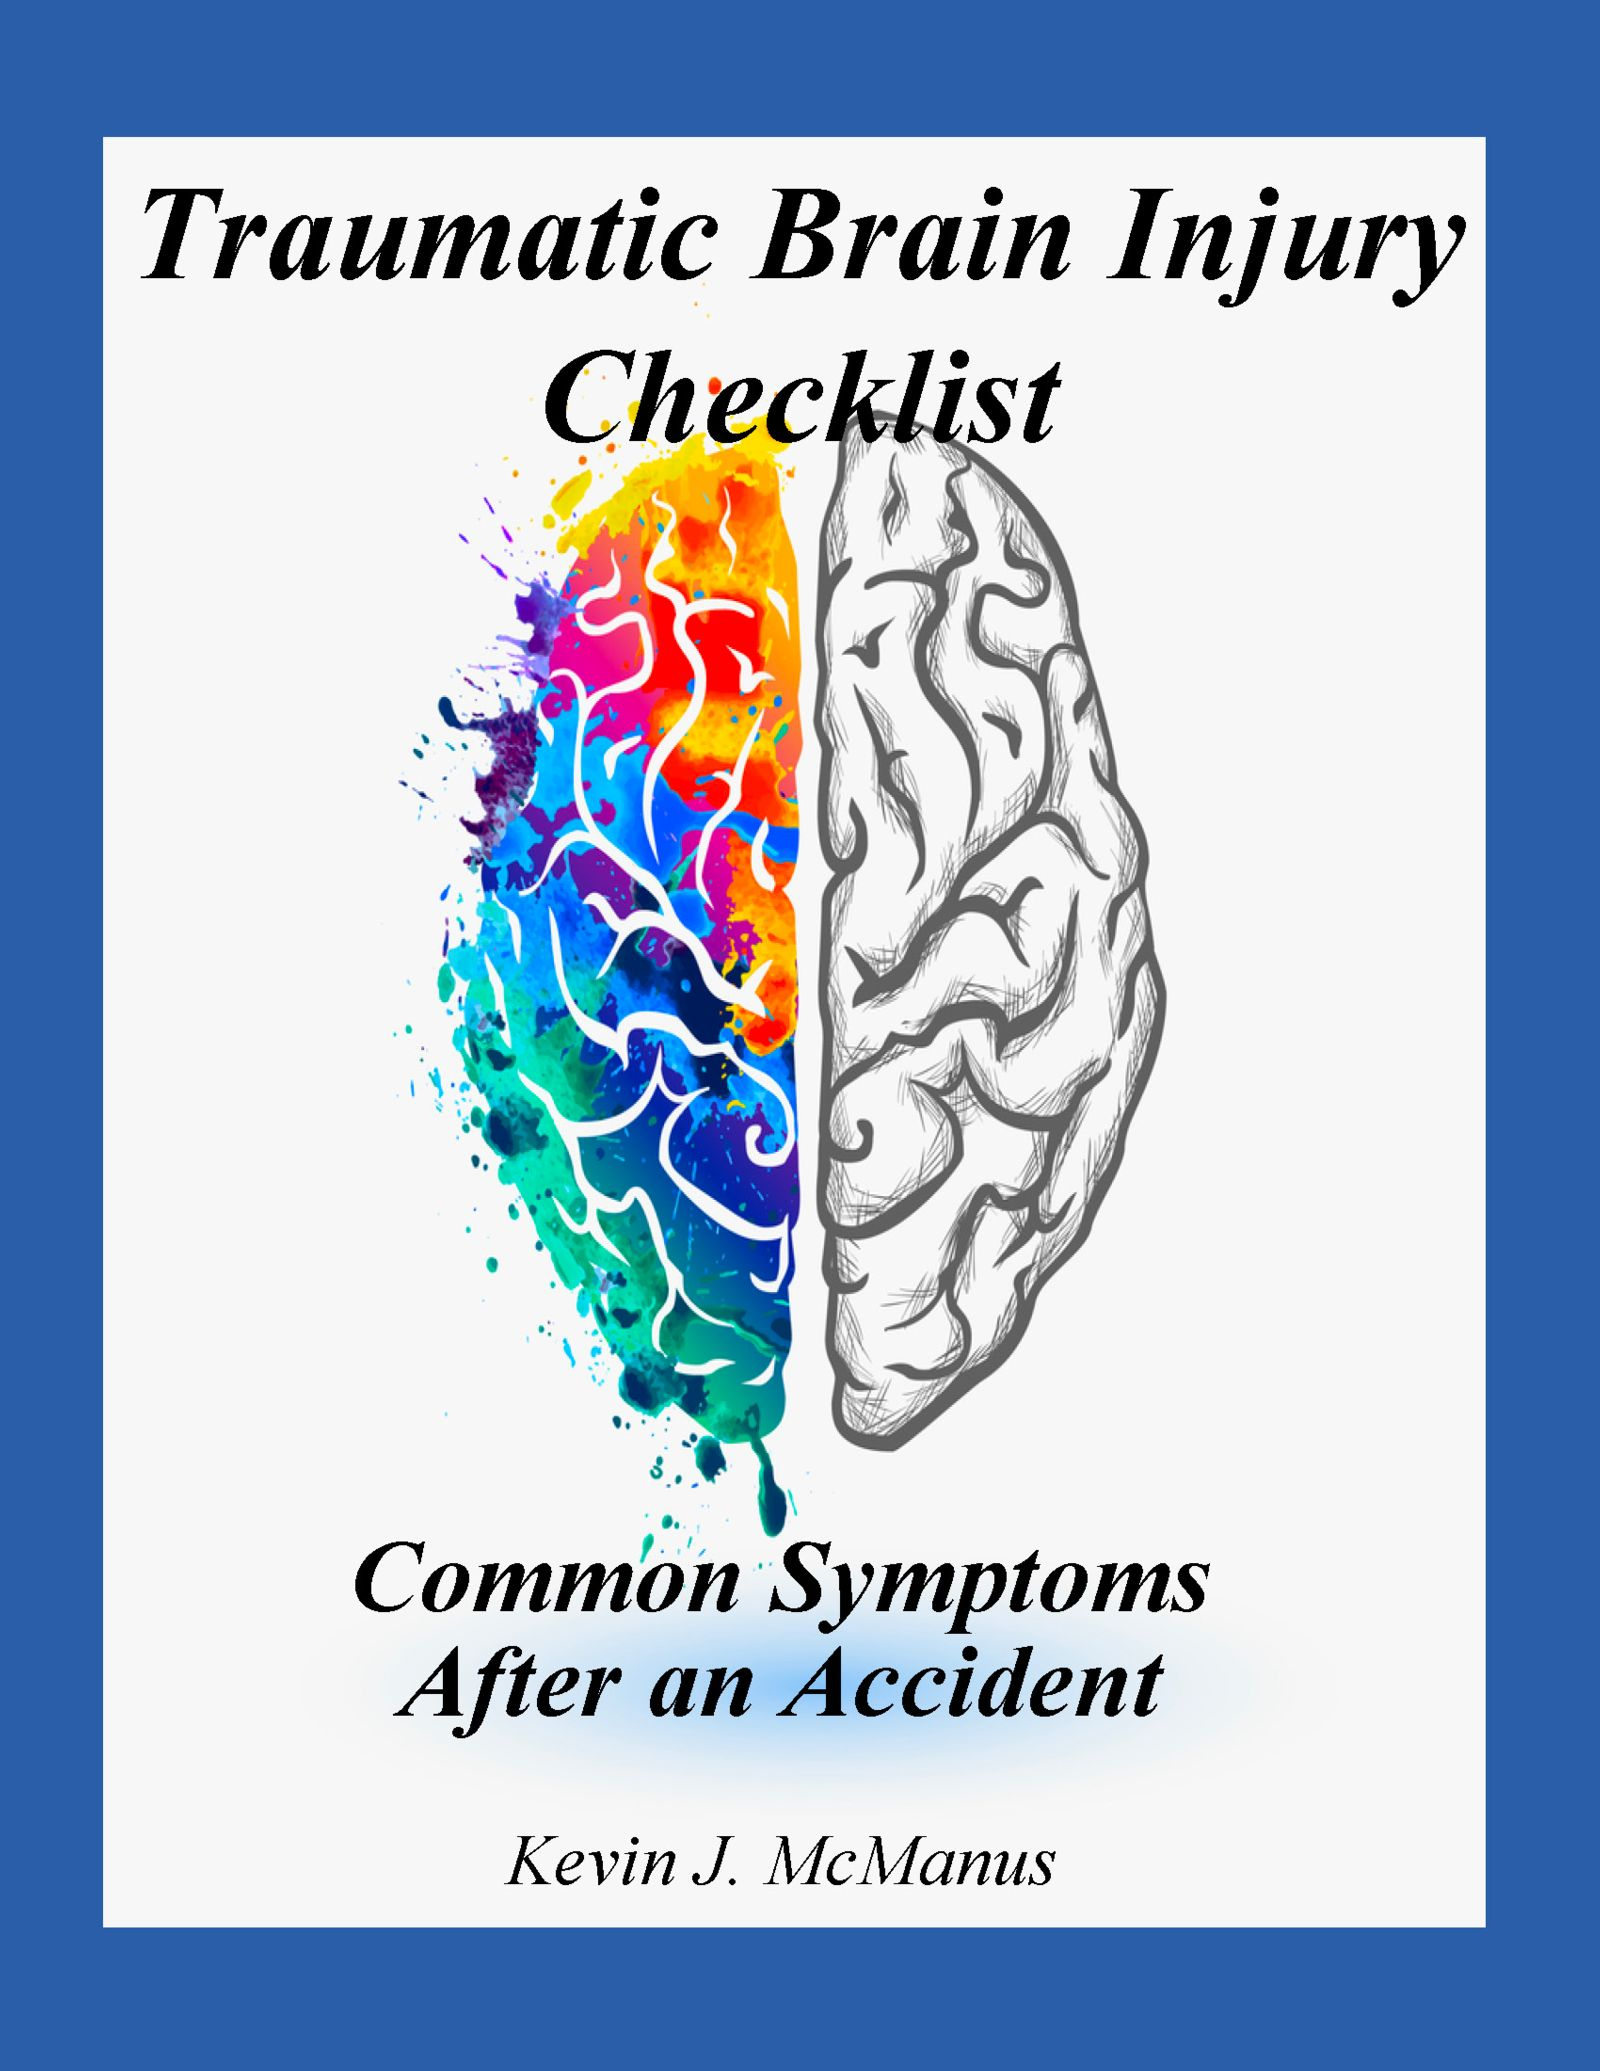 brain injury checklist for Kansas City car accident lawyer